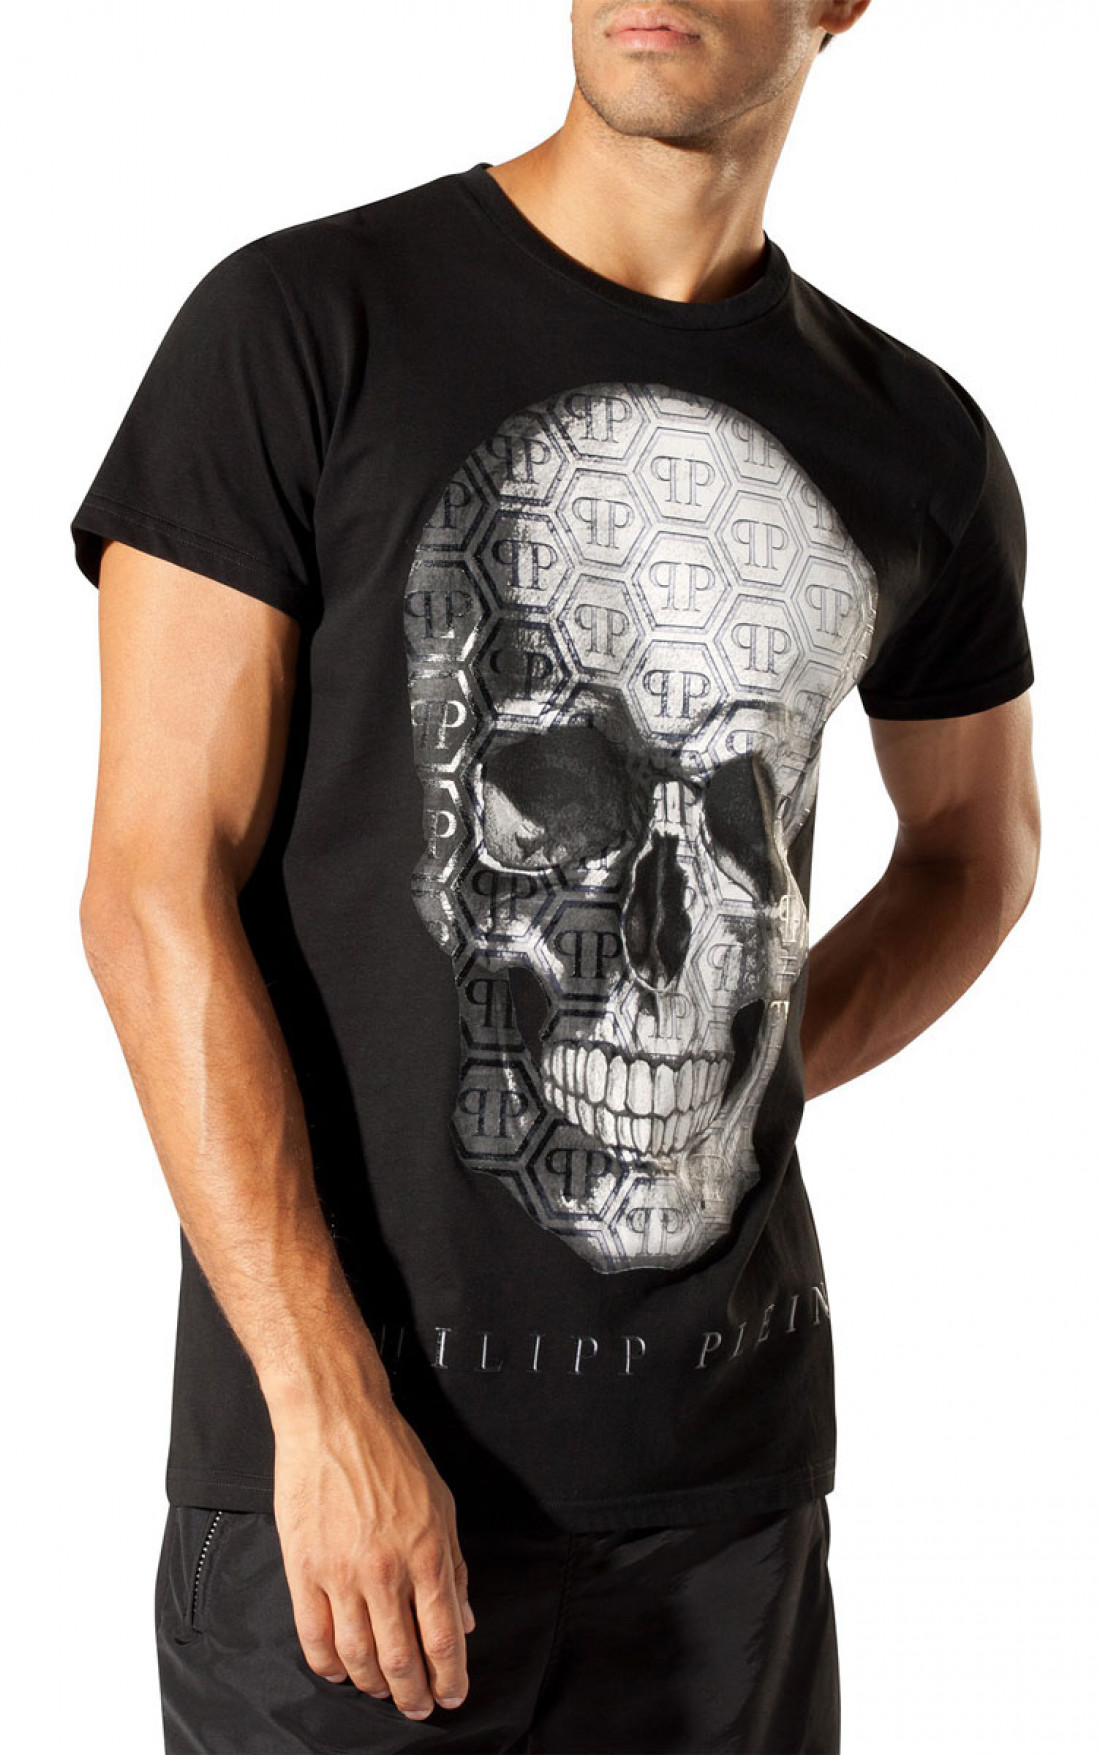 philipp plein t shirts mens black weekend t shirt mens t shirts online boudi fashion. Black Bedroom Furniture Sets. Home Design Ideas